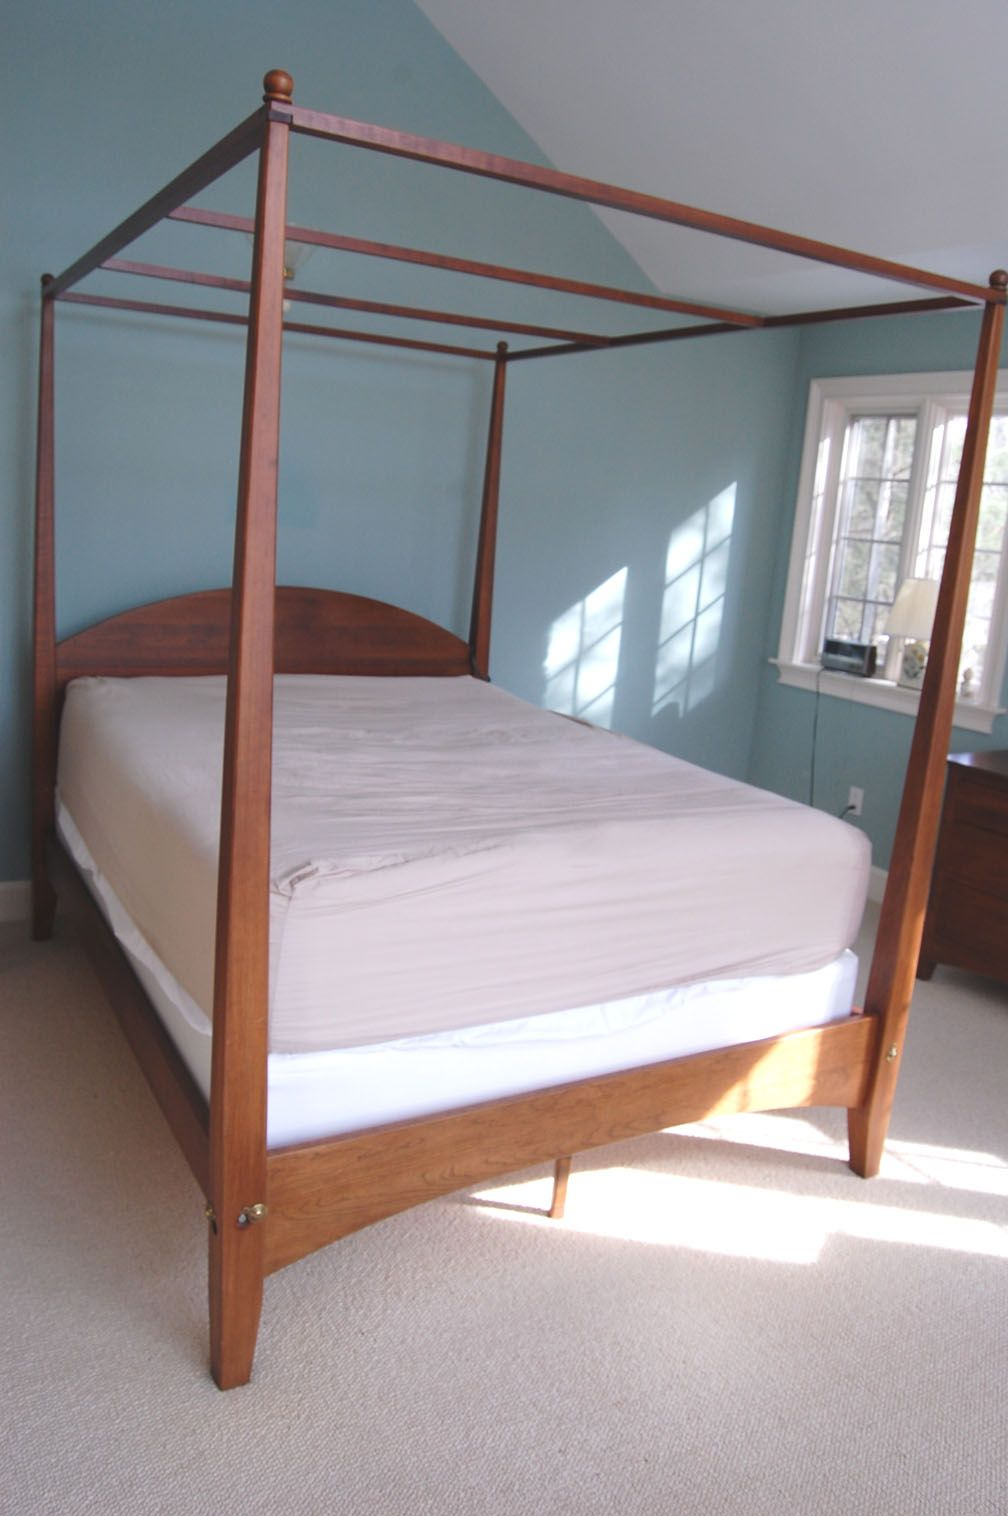 Ethan Allen American Impressions Our Bed Does Not Have The Tester Four Poster